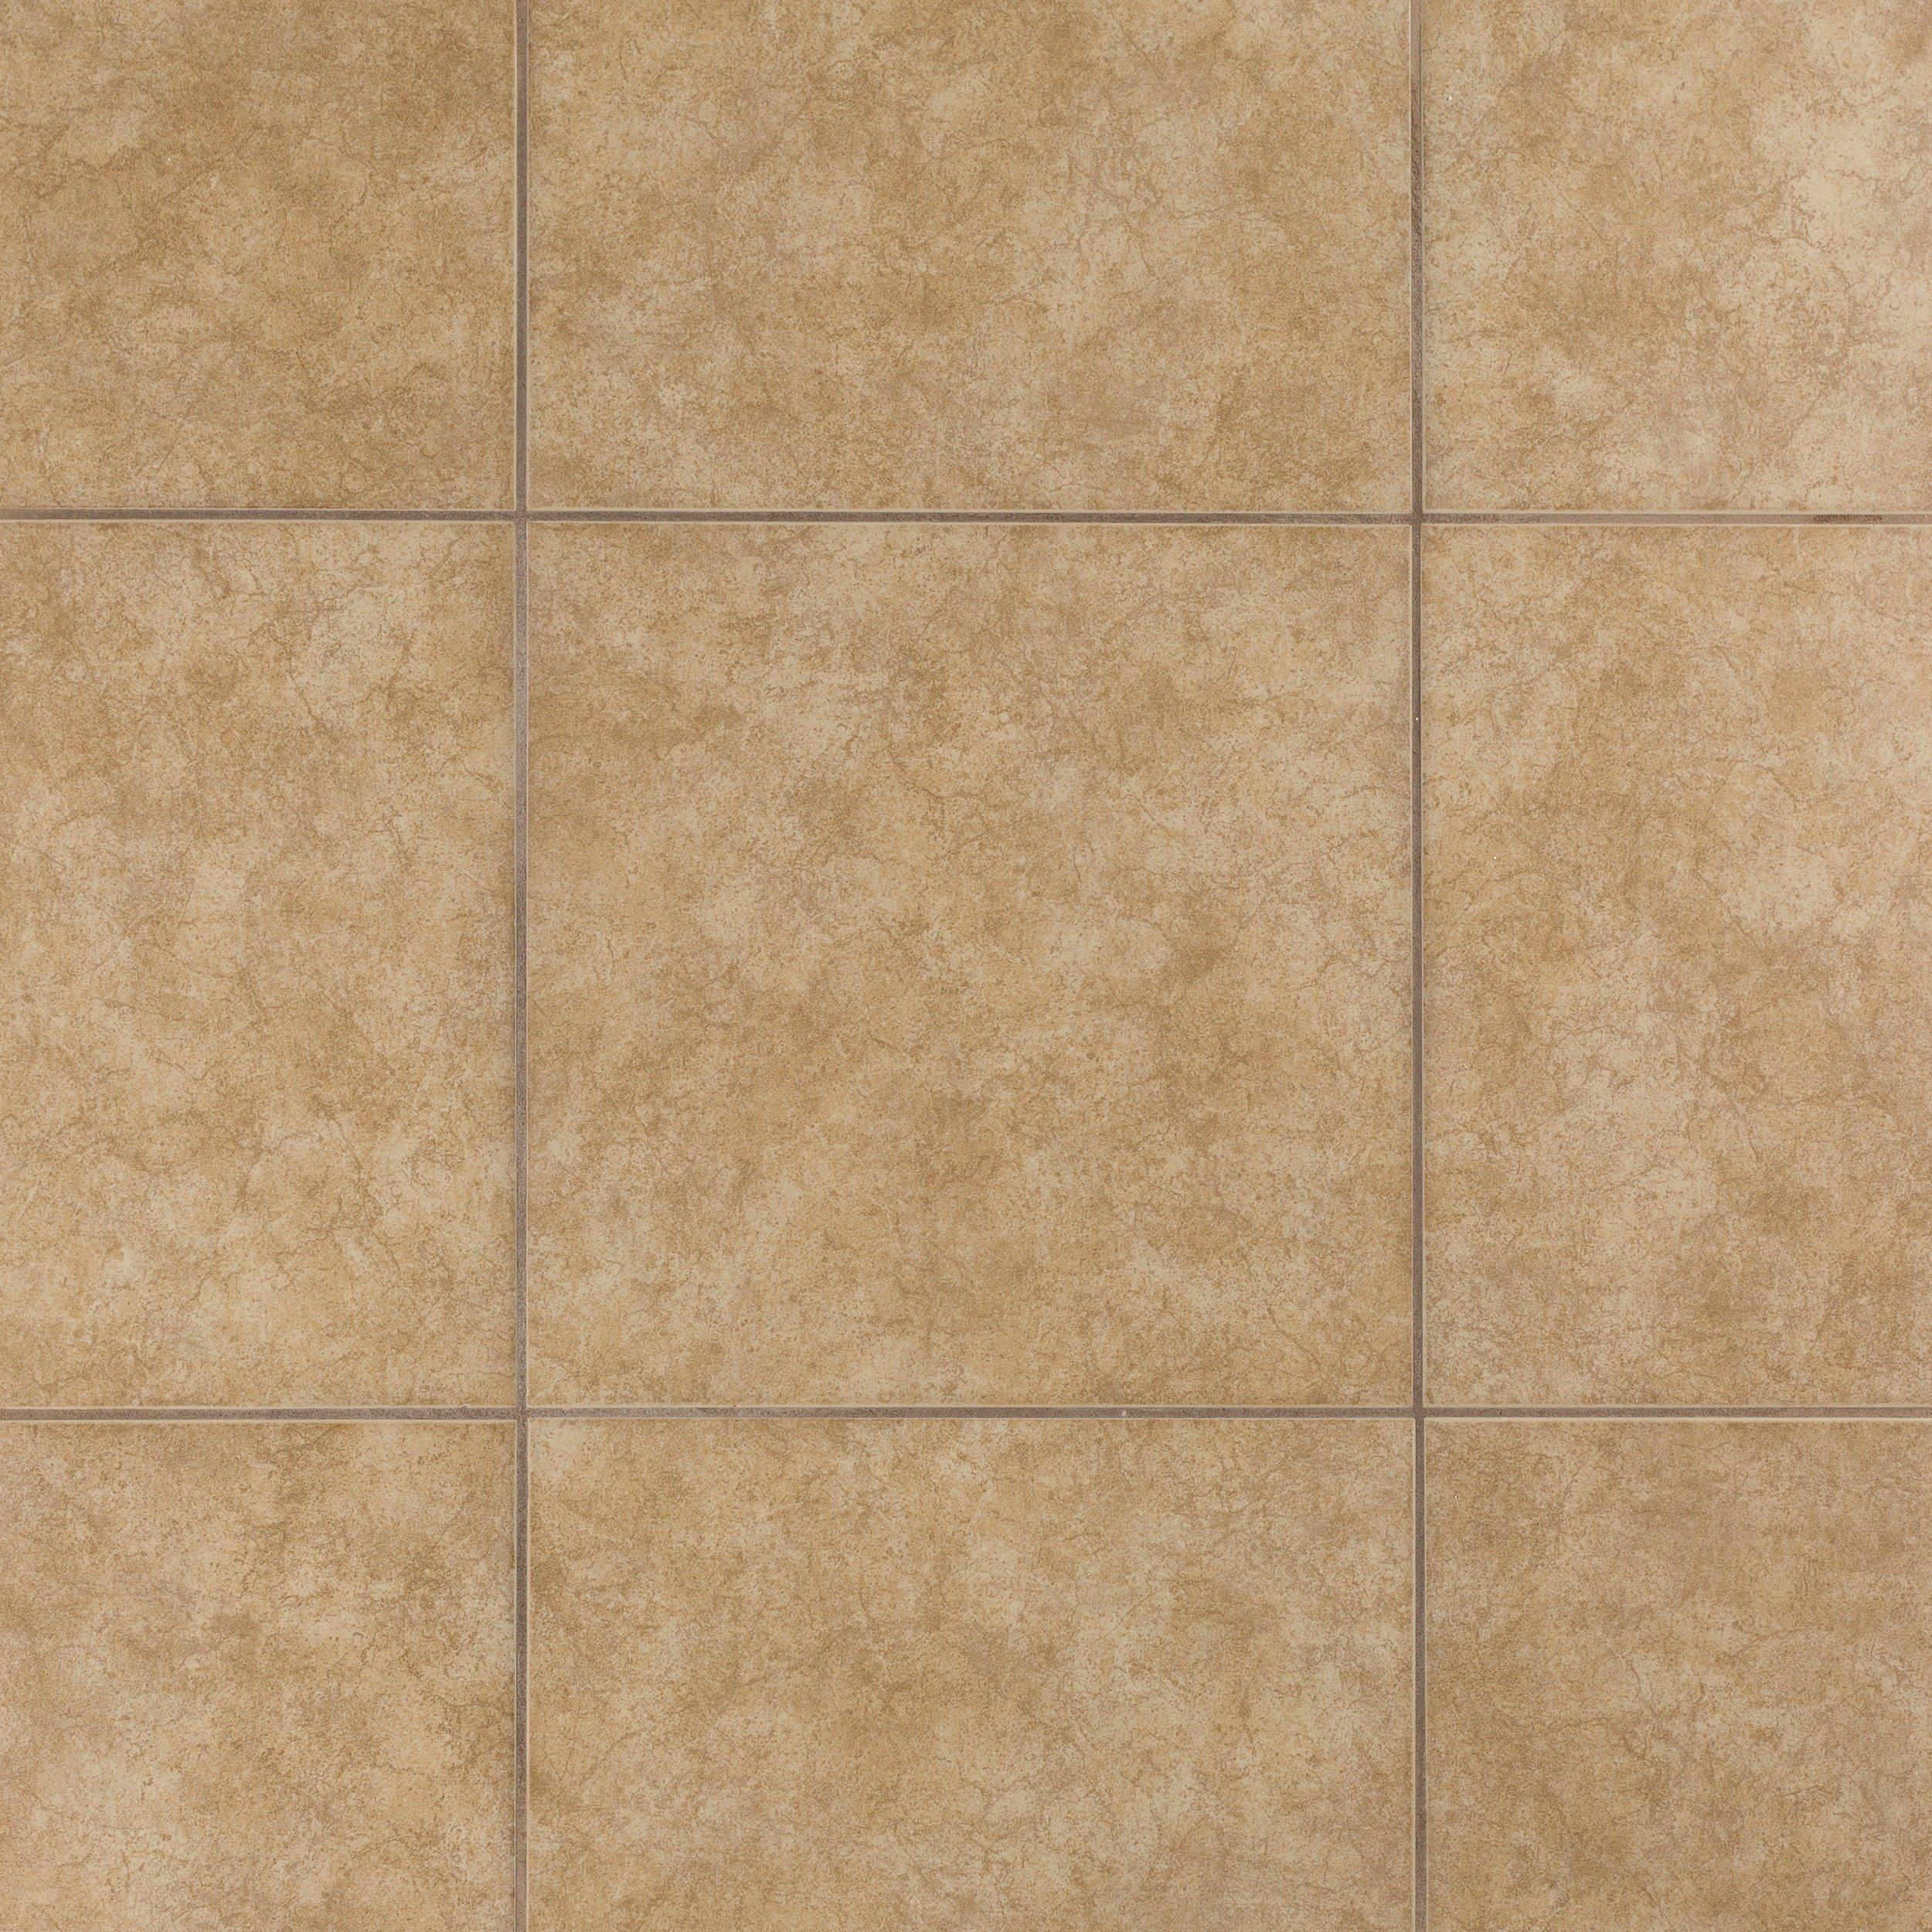 Colorado beige floor tiles